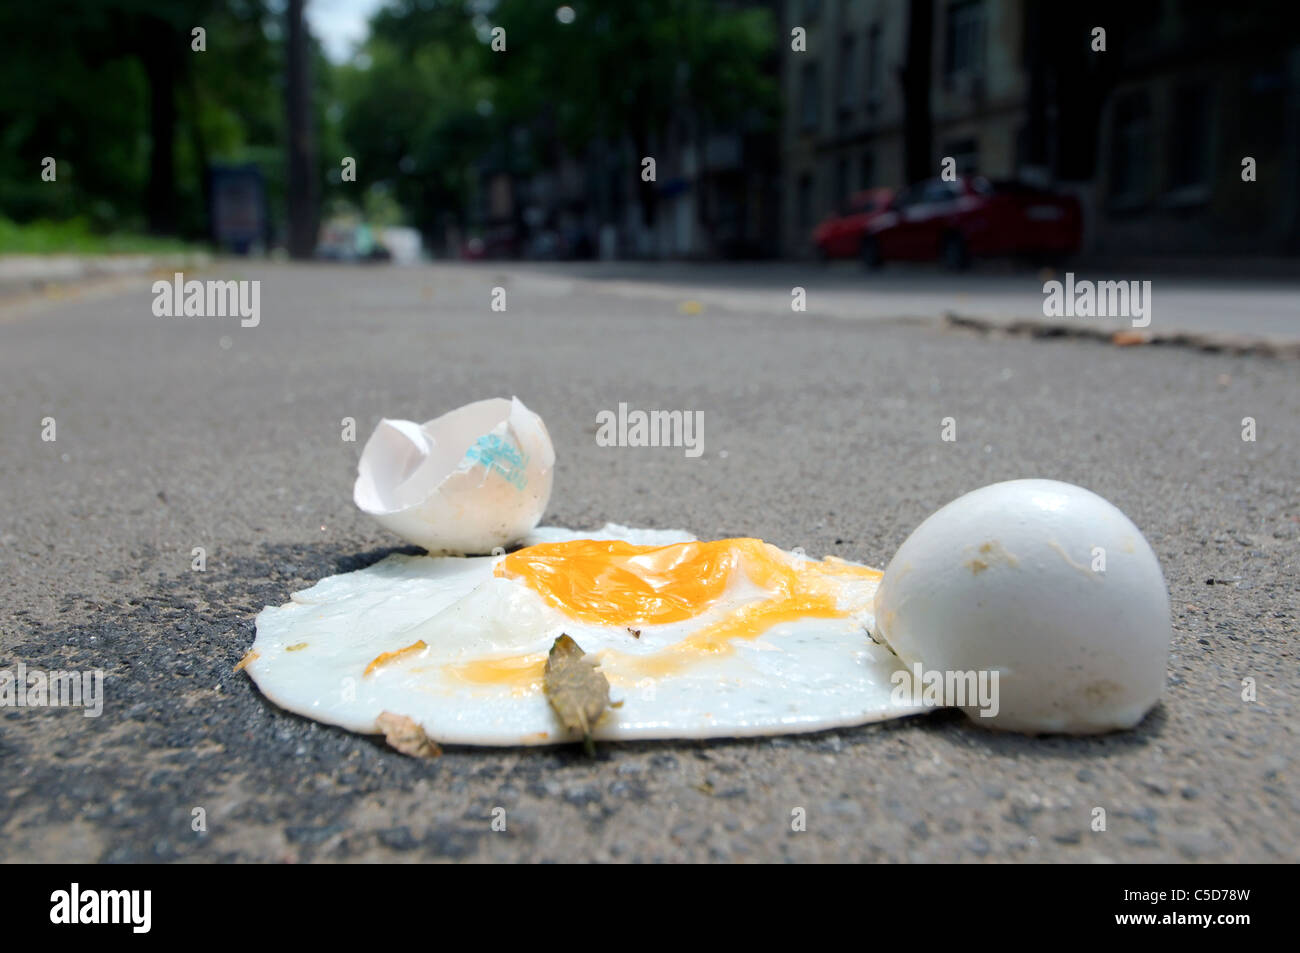 The divided egg which has fried on asphalt heated by the sun - Stock Image